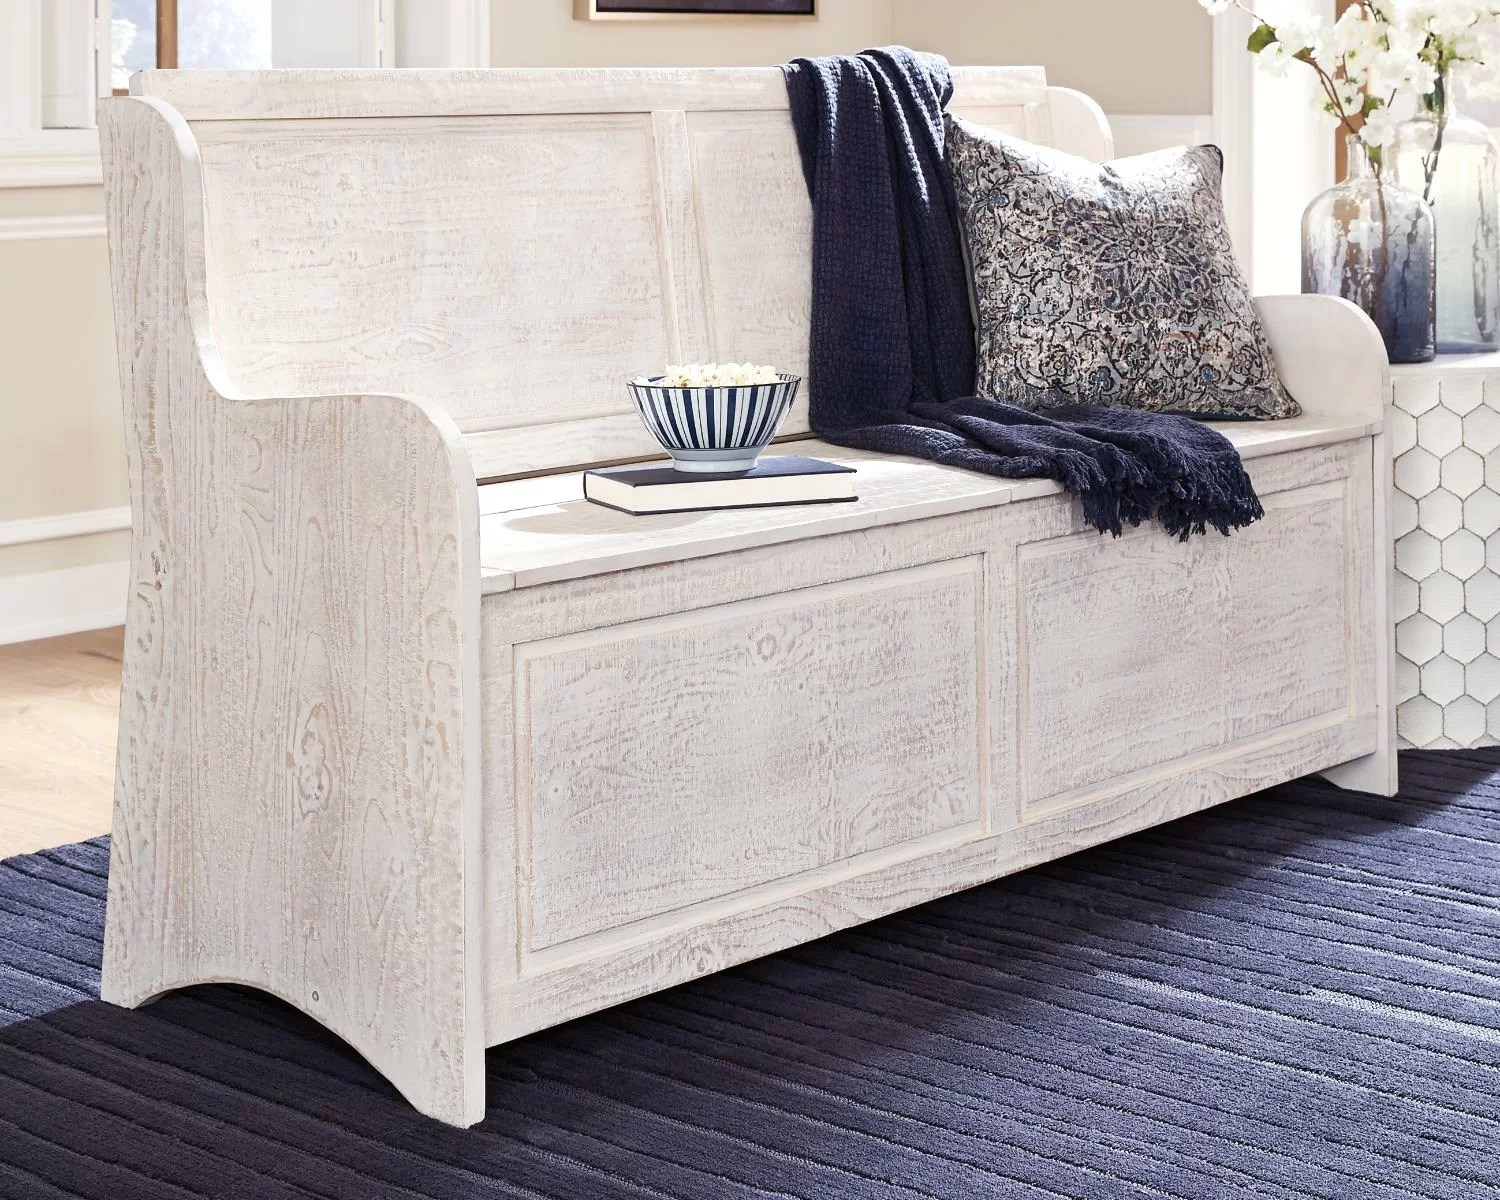 Roundhill furniture quality solid wood shoe bench with storage, white. whitmire solid wood flip top storage bench